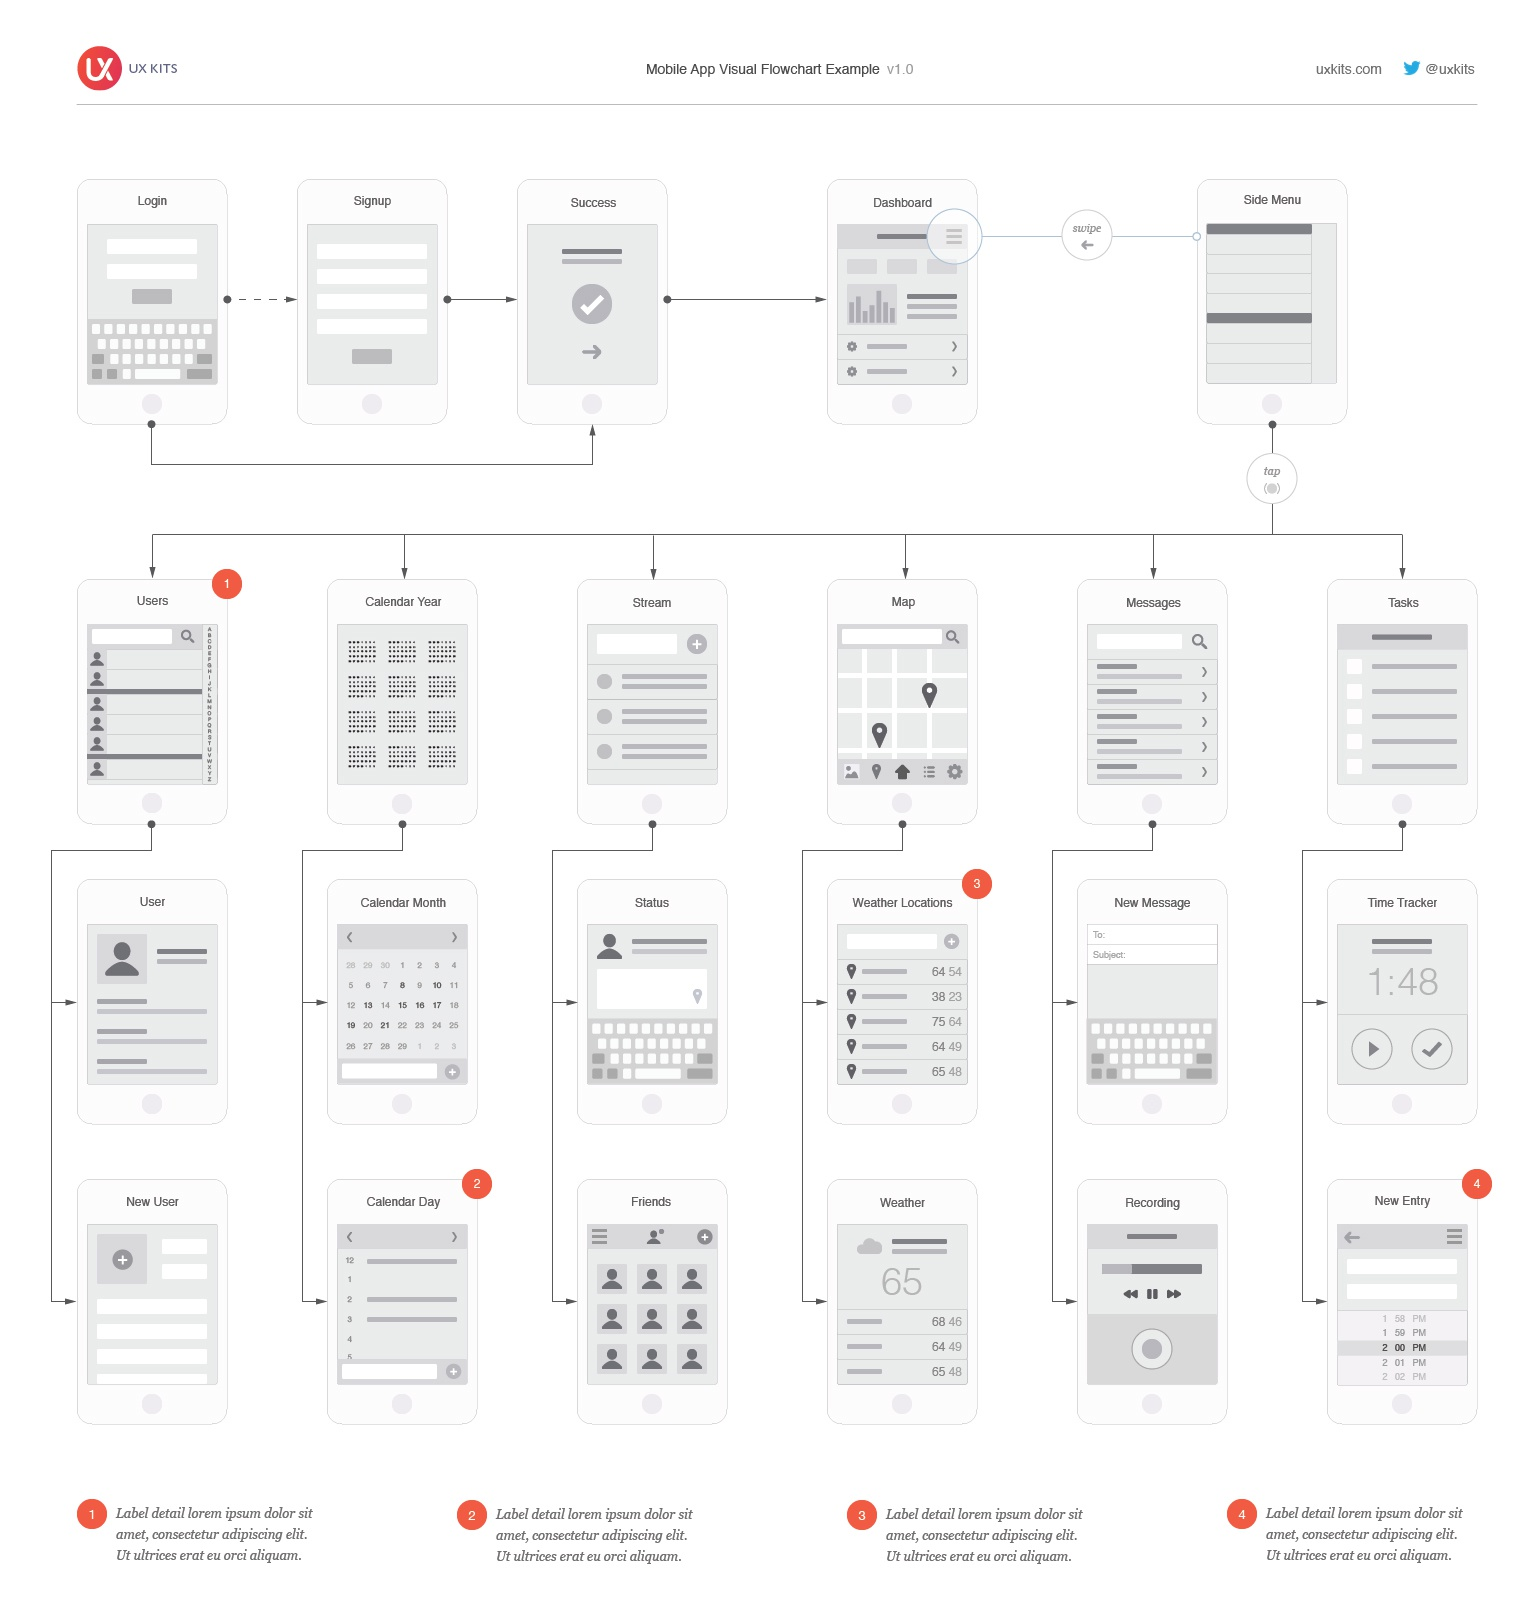 Basic Site Map Example: UX-Kits-Mobile-Flowchart-Example.jpg By Eric Miller